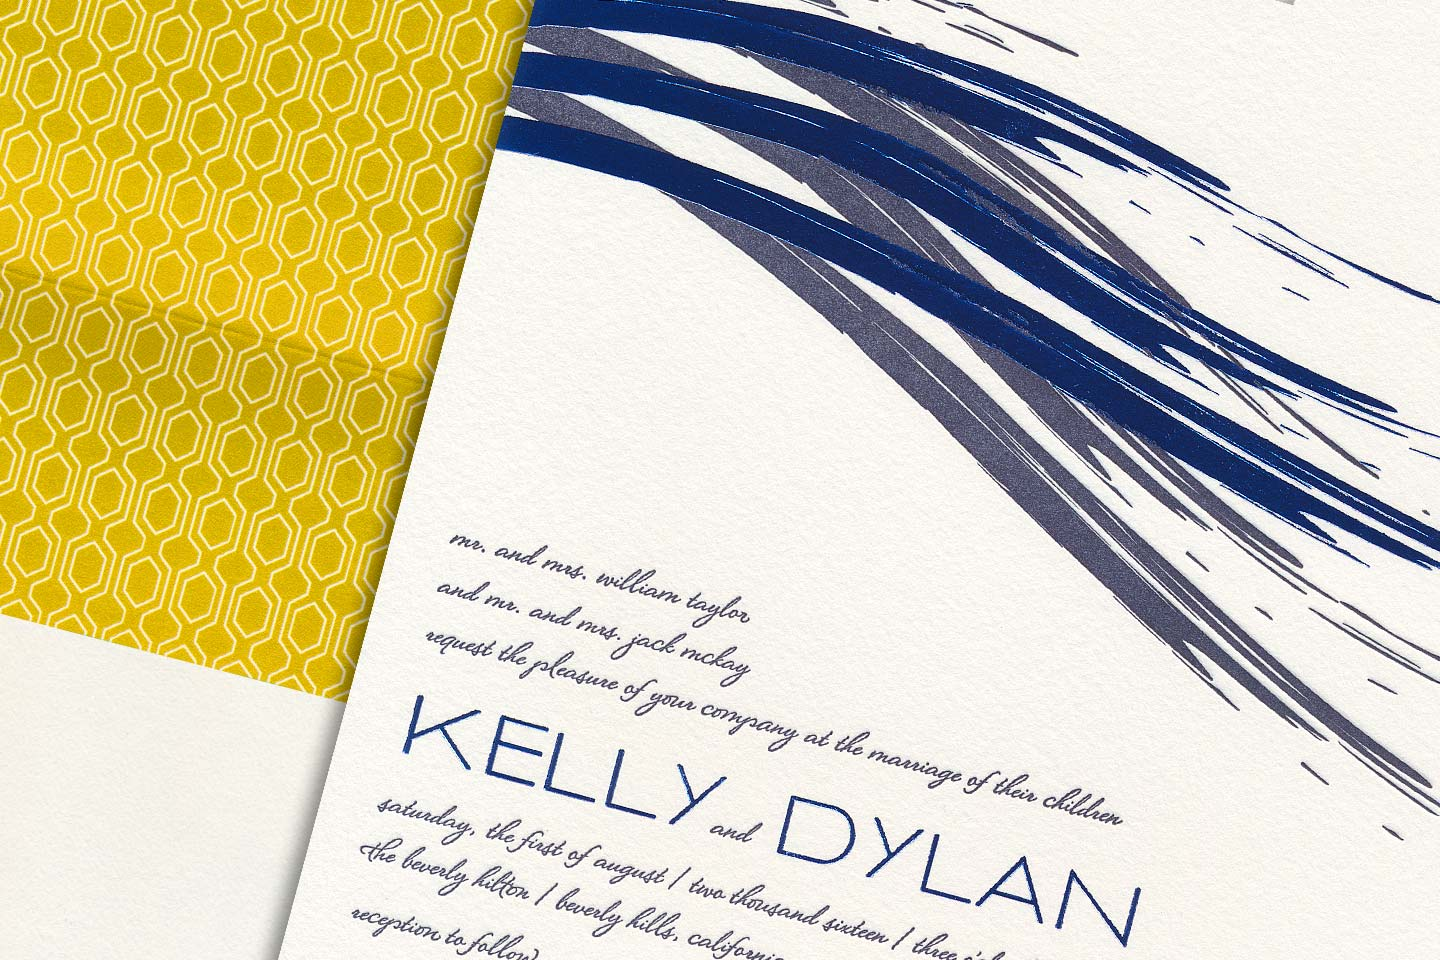 a beautiful sample wedding invitation for kelly and dylan, overlayed on top of its envelope featuring a beautiful floral print liner, captured by 4d, inc